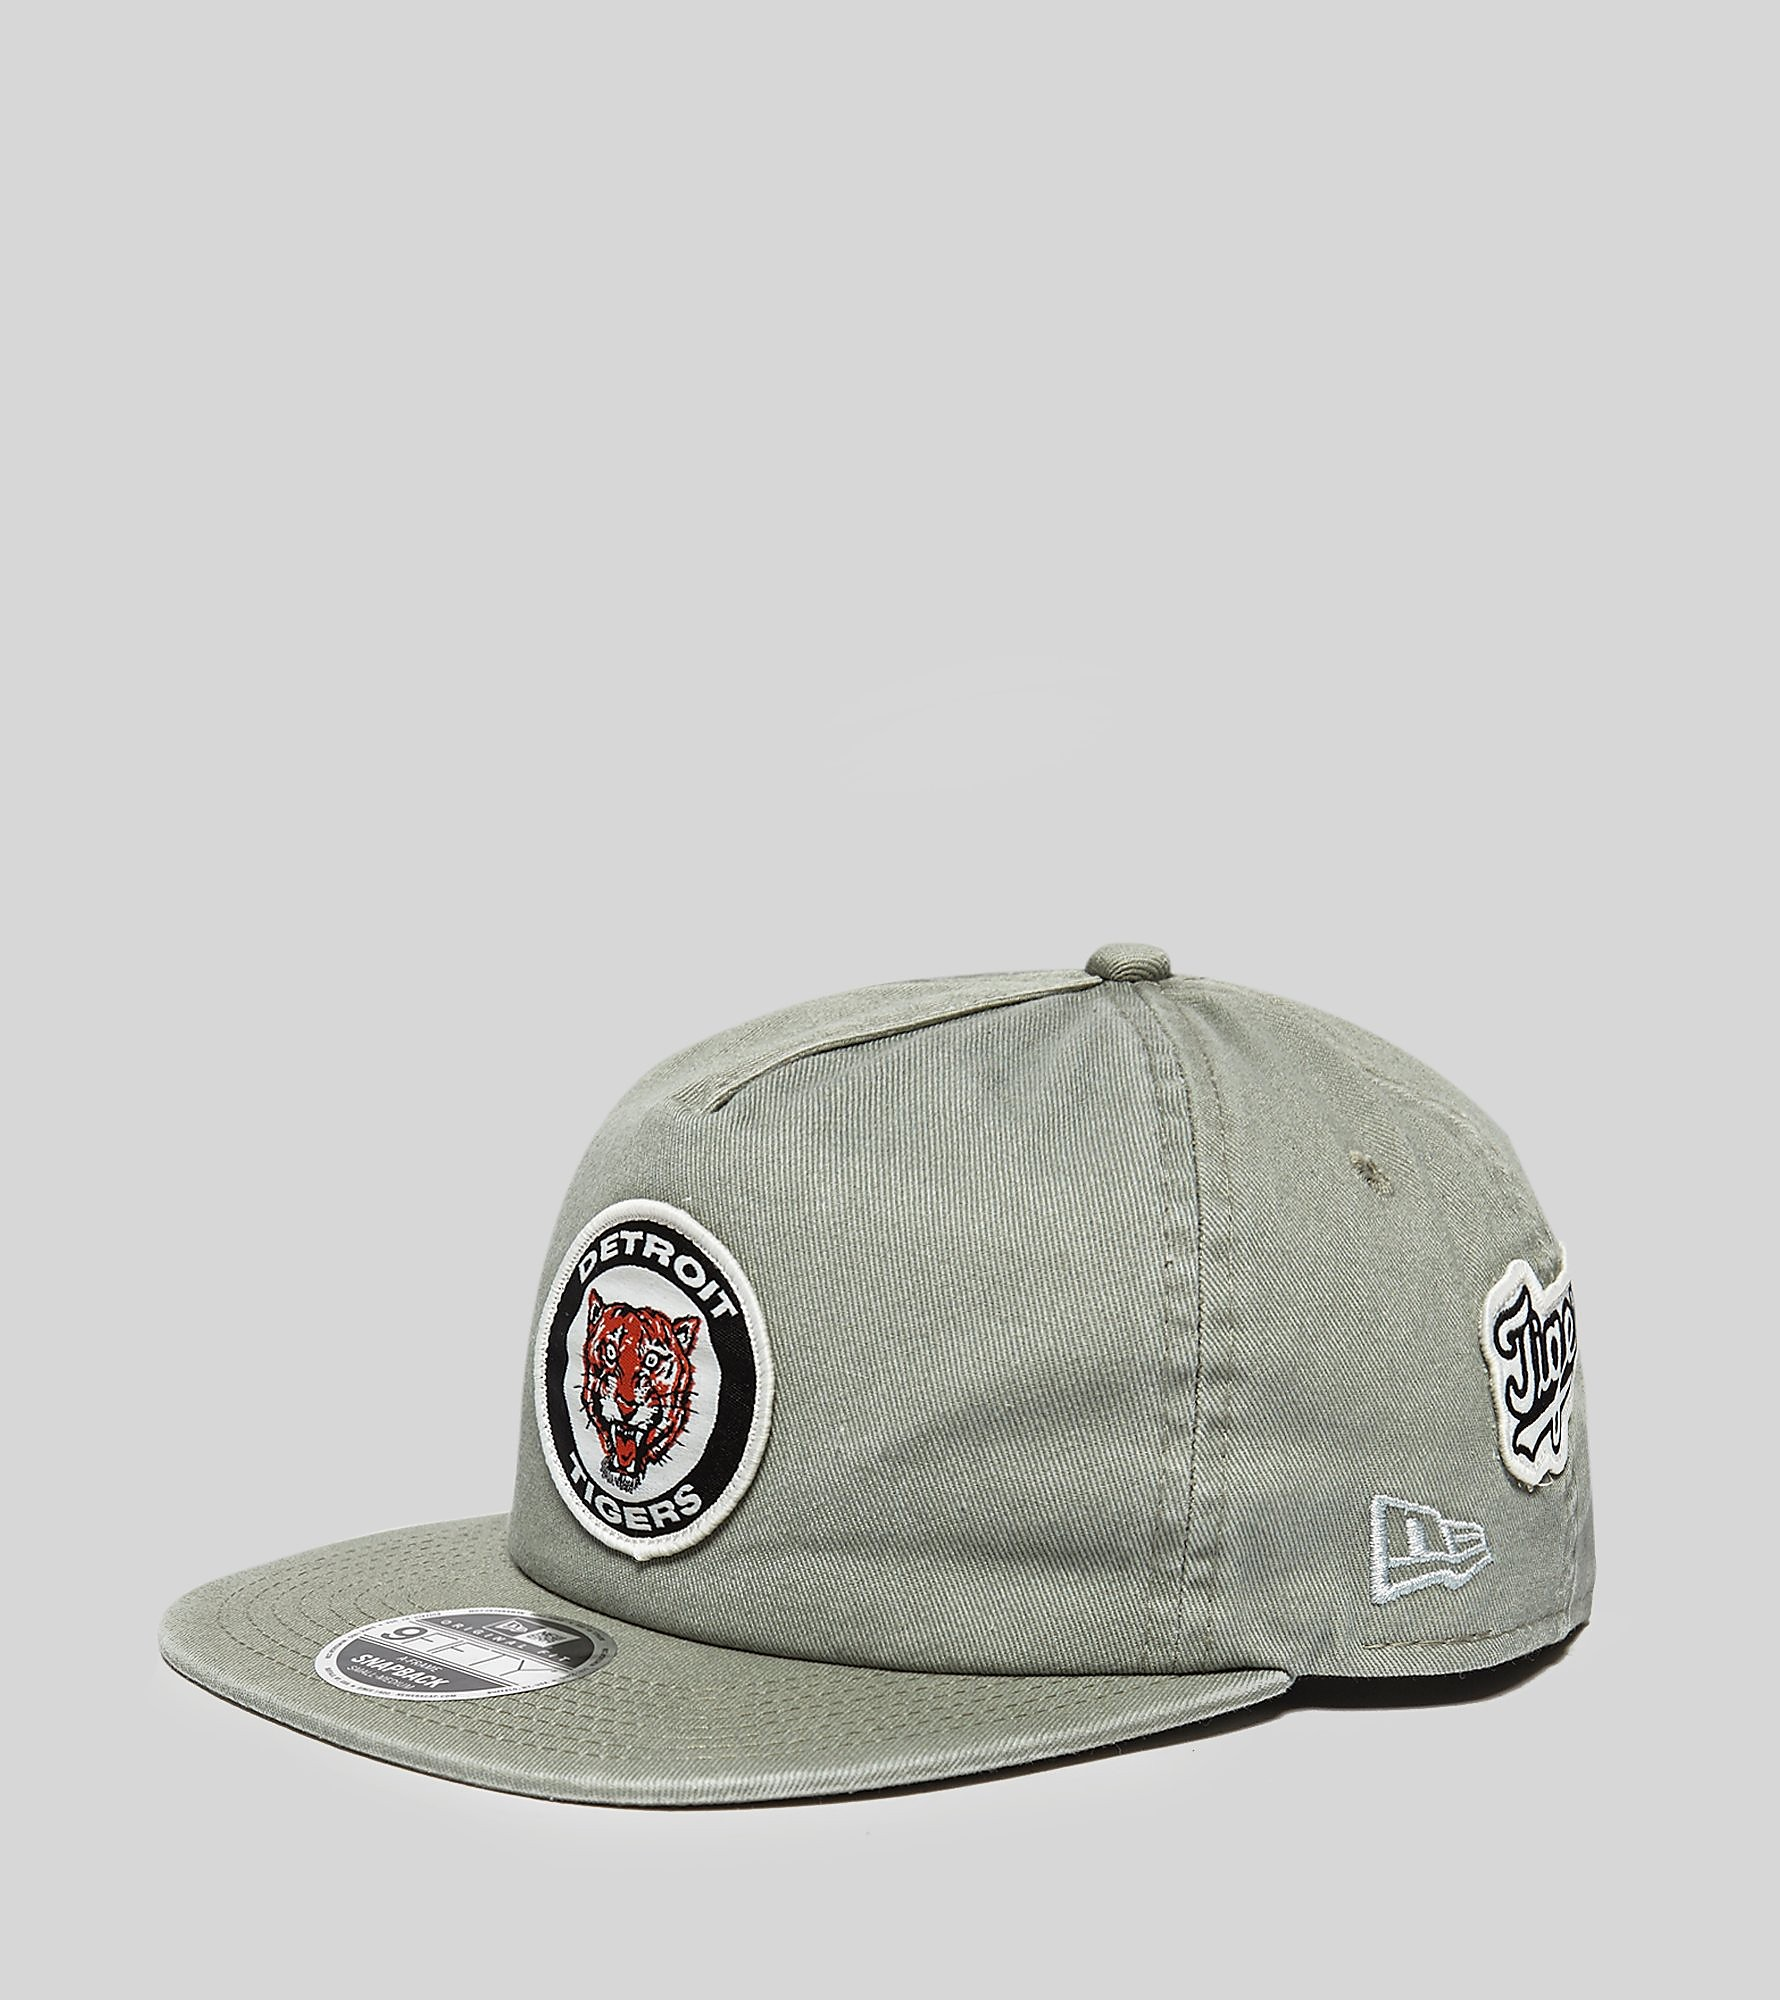 New Era 9FIFTY Snapback Cap - size? Exclusive